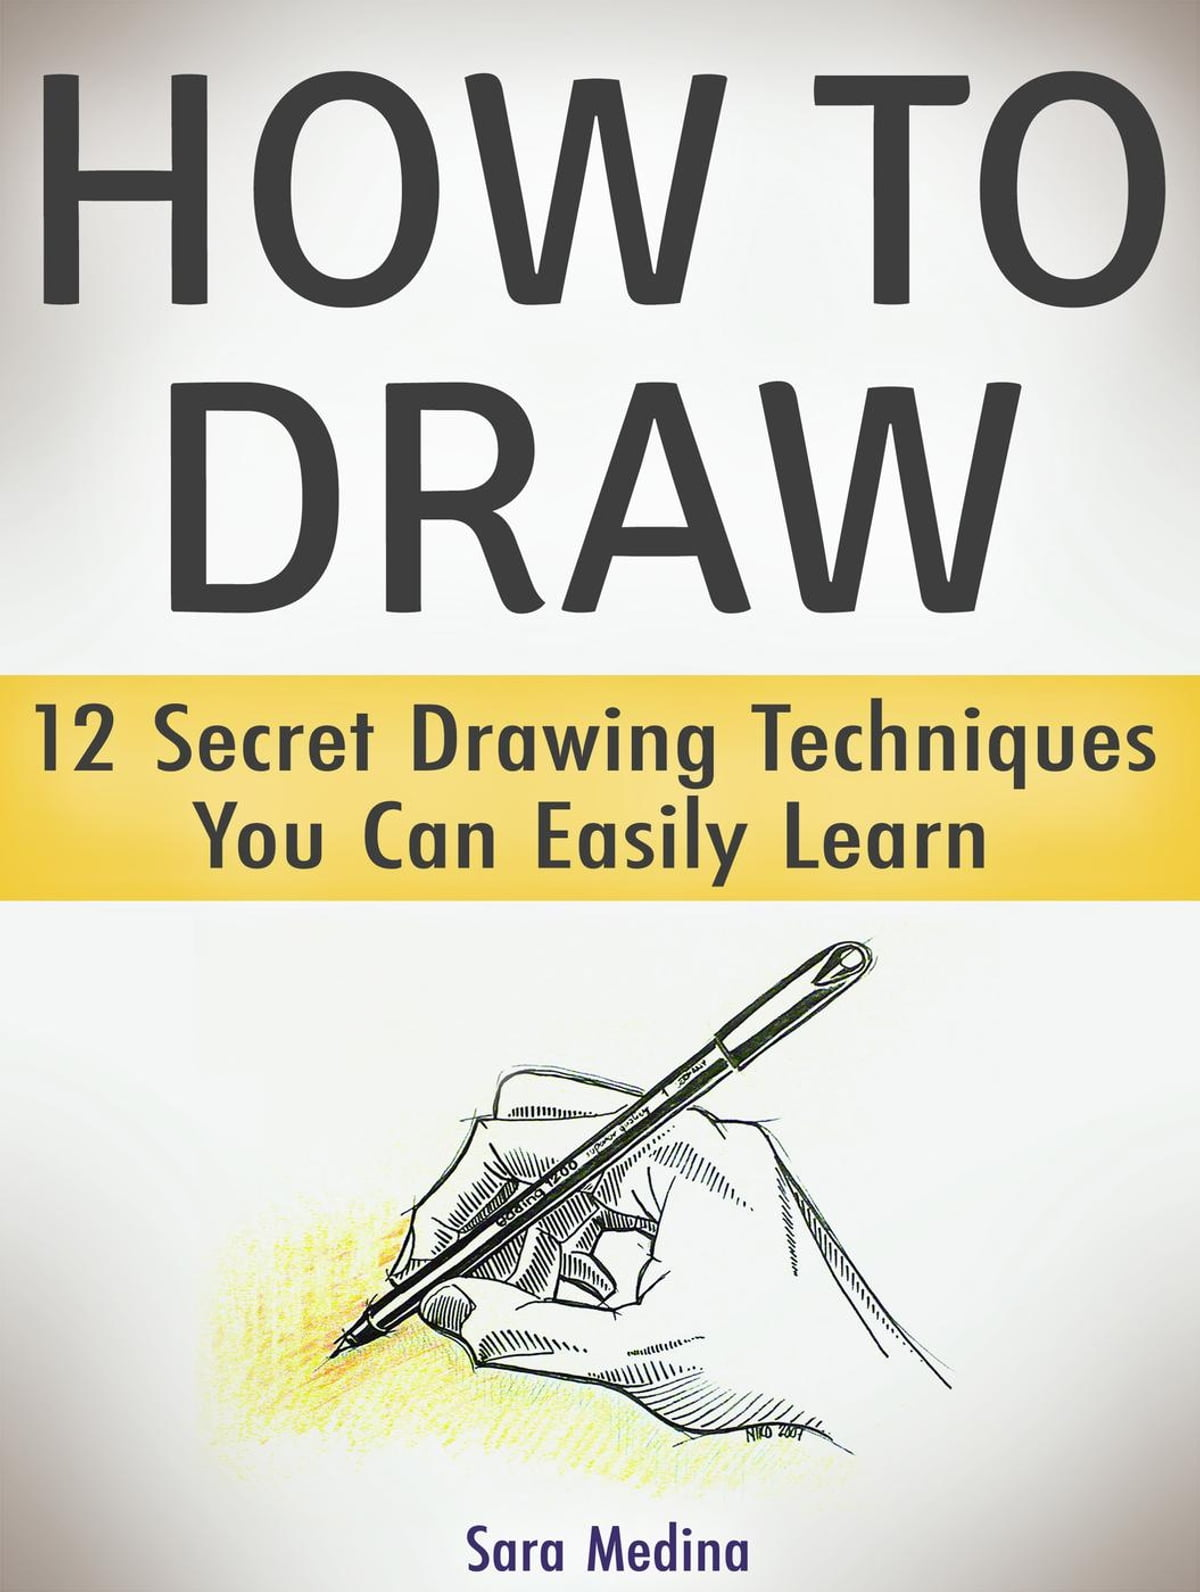 How to Draw: 12 Secret Drawing Techniques You Can Easily Learn eBook by  Sara Medina - 9781386026433 | Rakuten Kobo